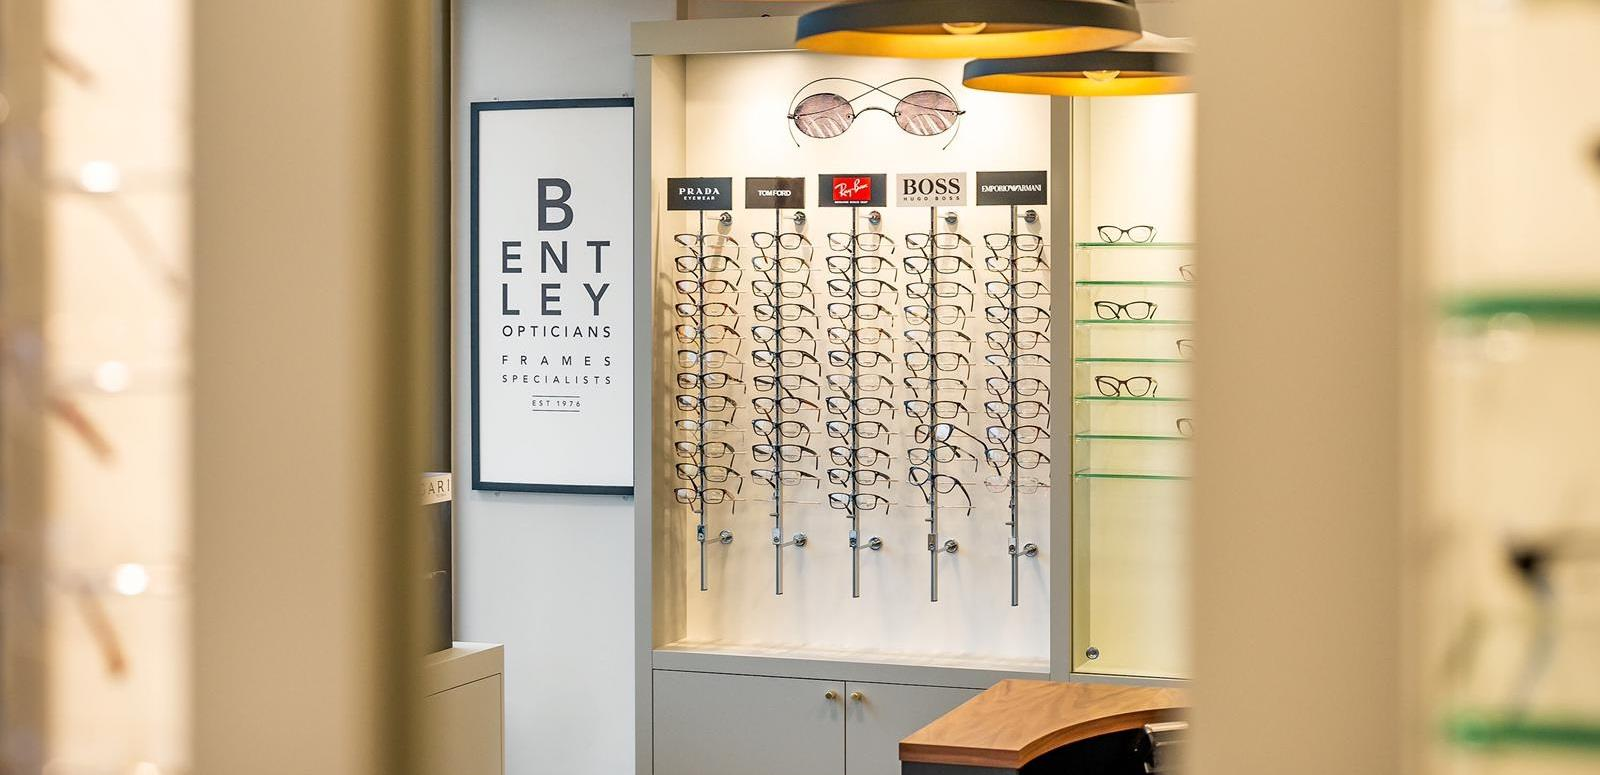 bentley opticians in essex